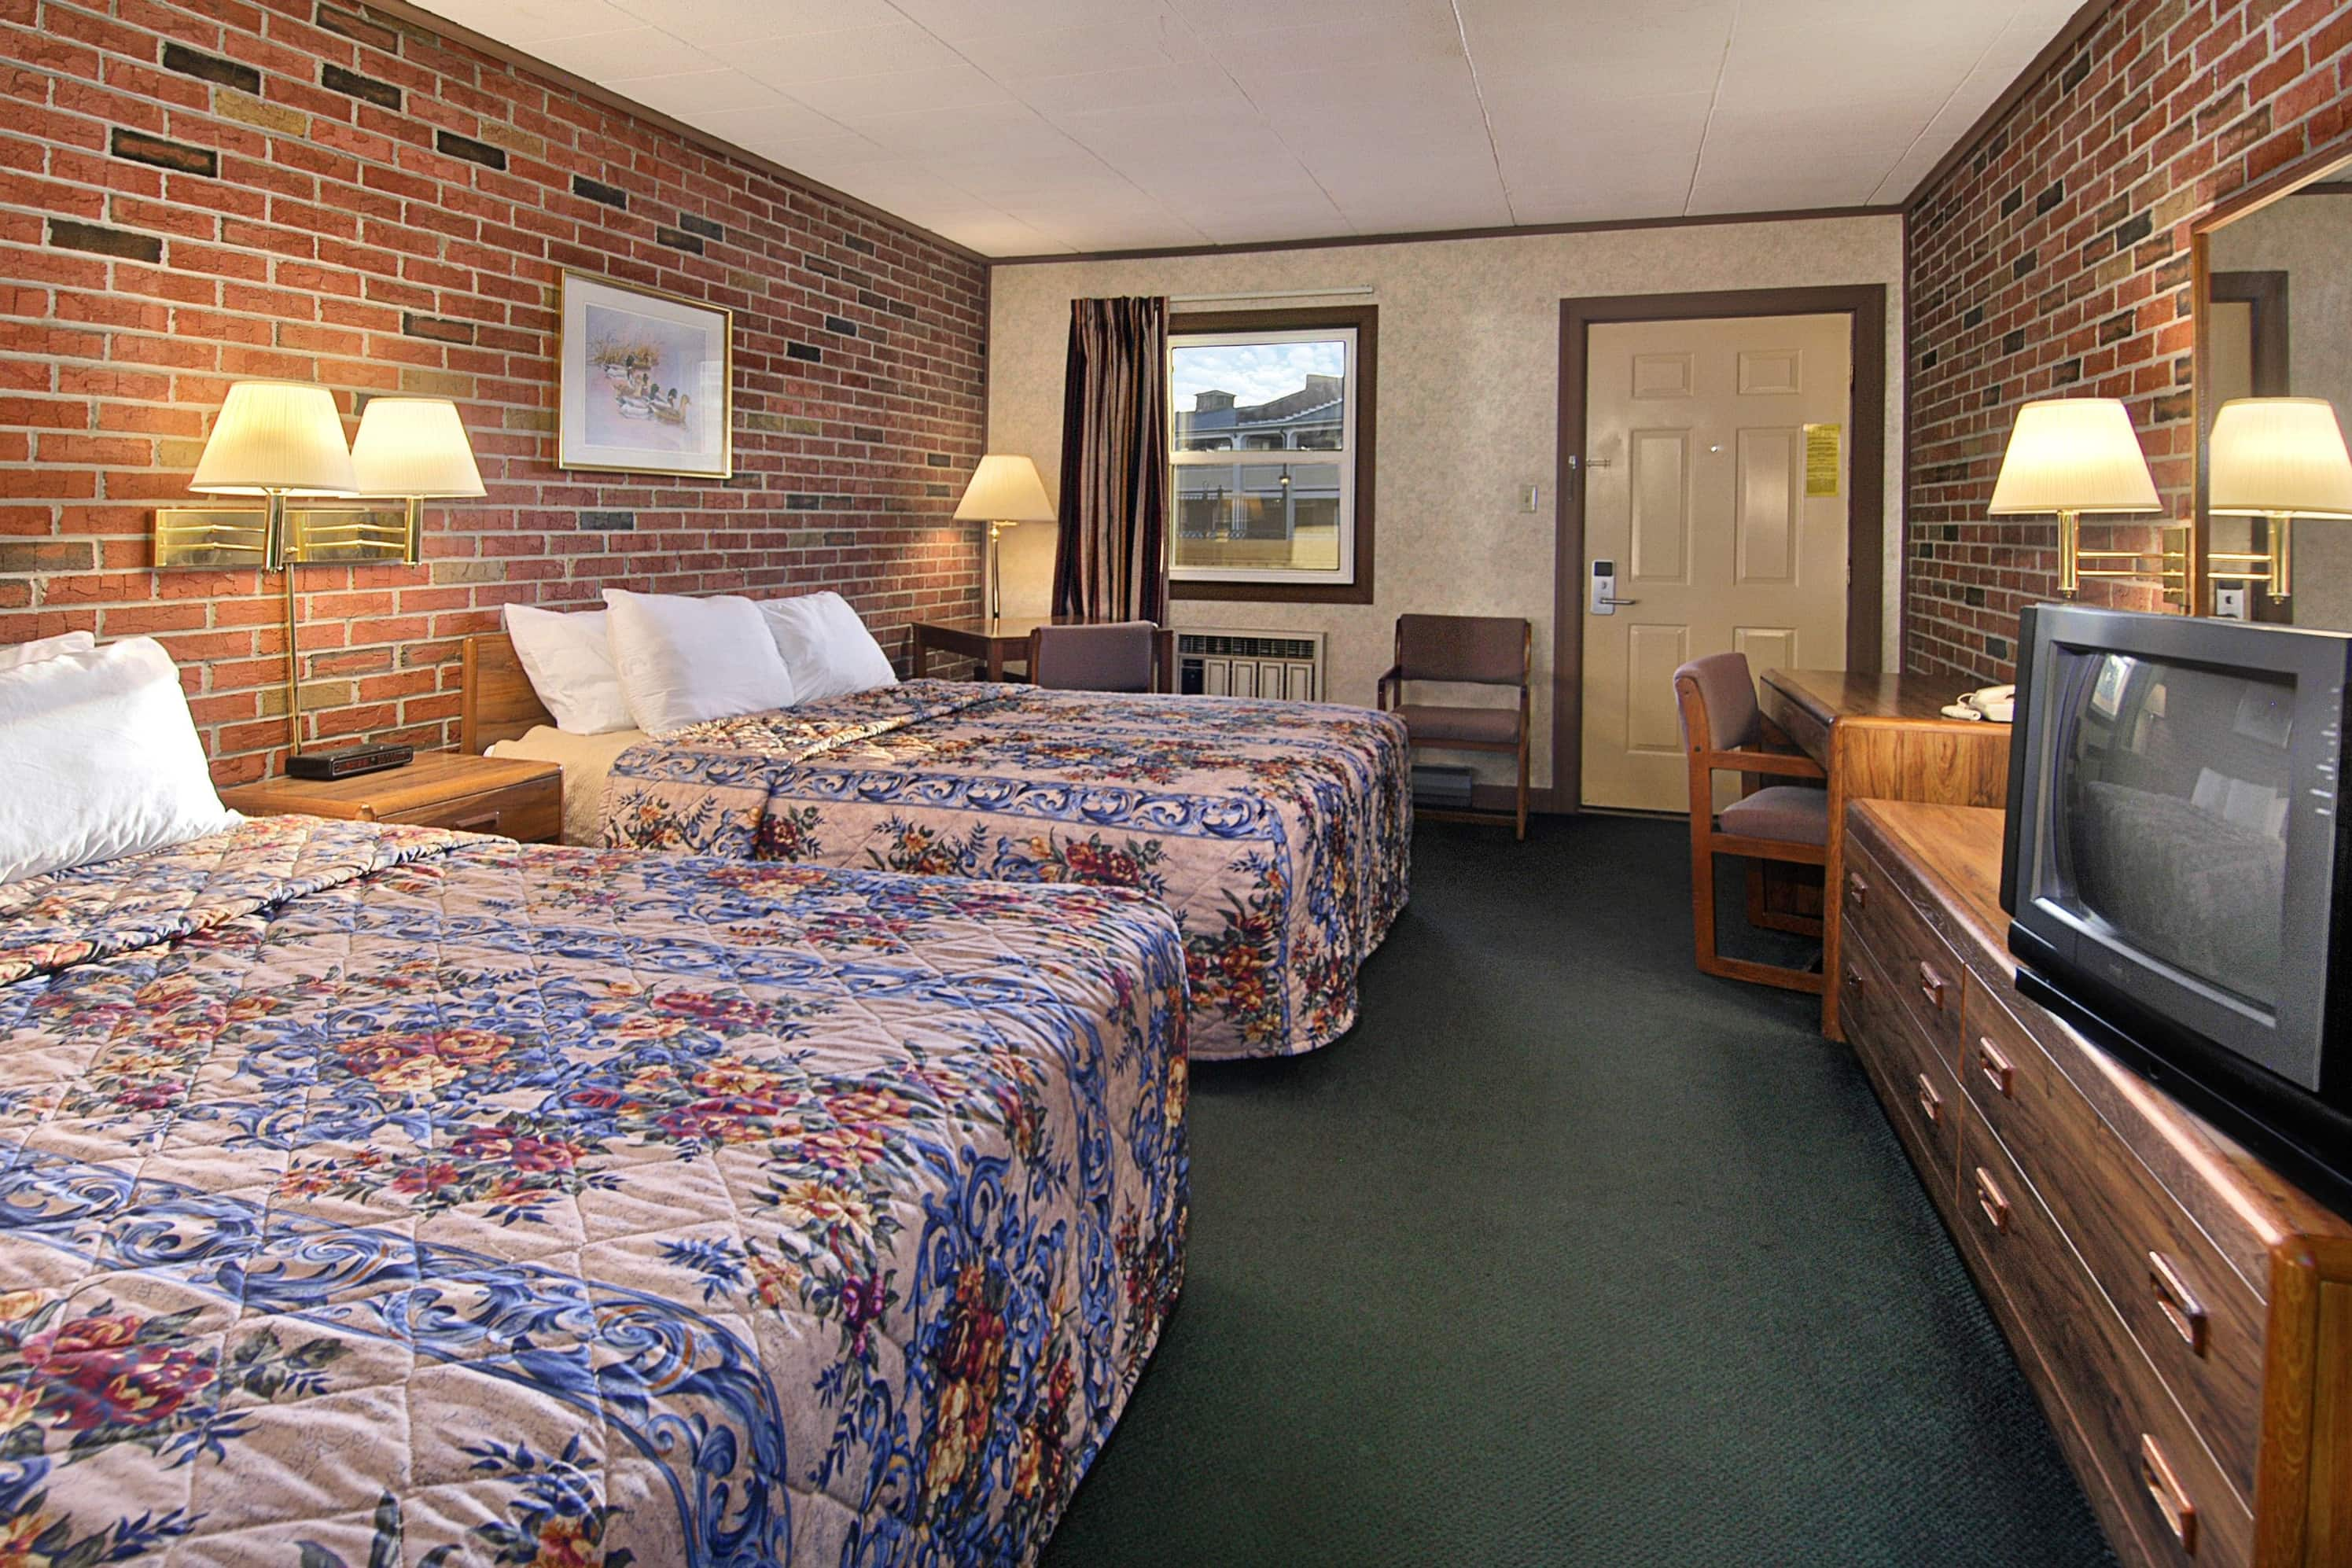 Guest room at the Days Inn Lewisburg in Lewisburg, Pennsylvania